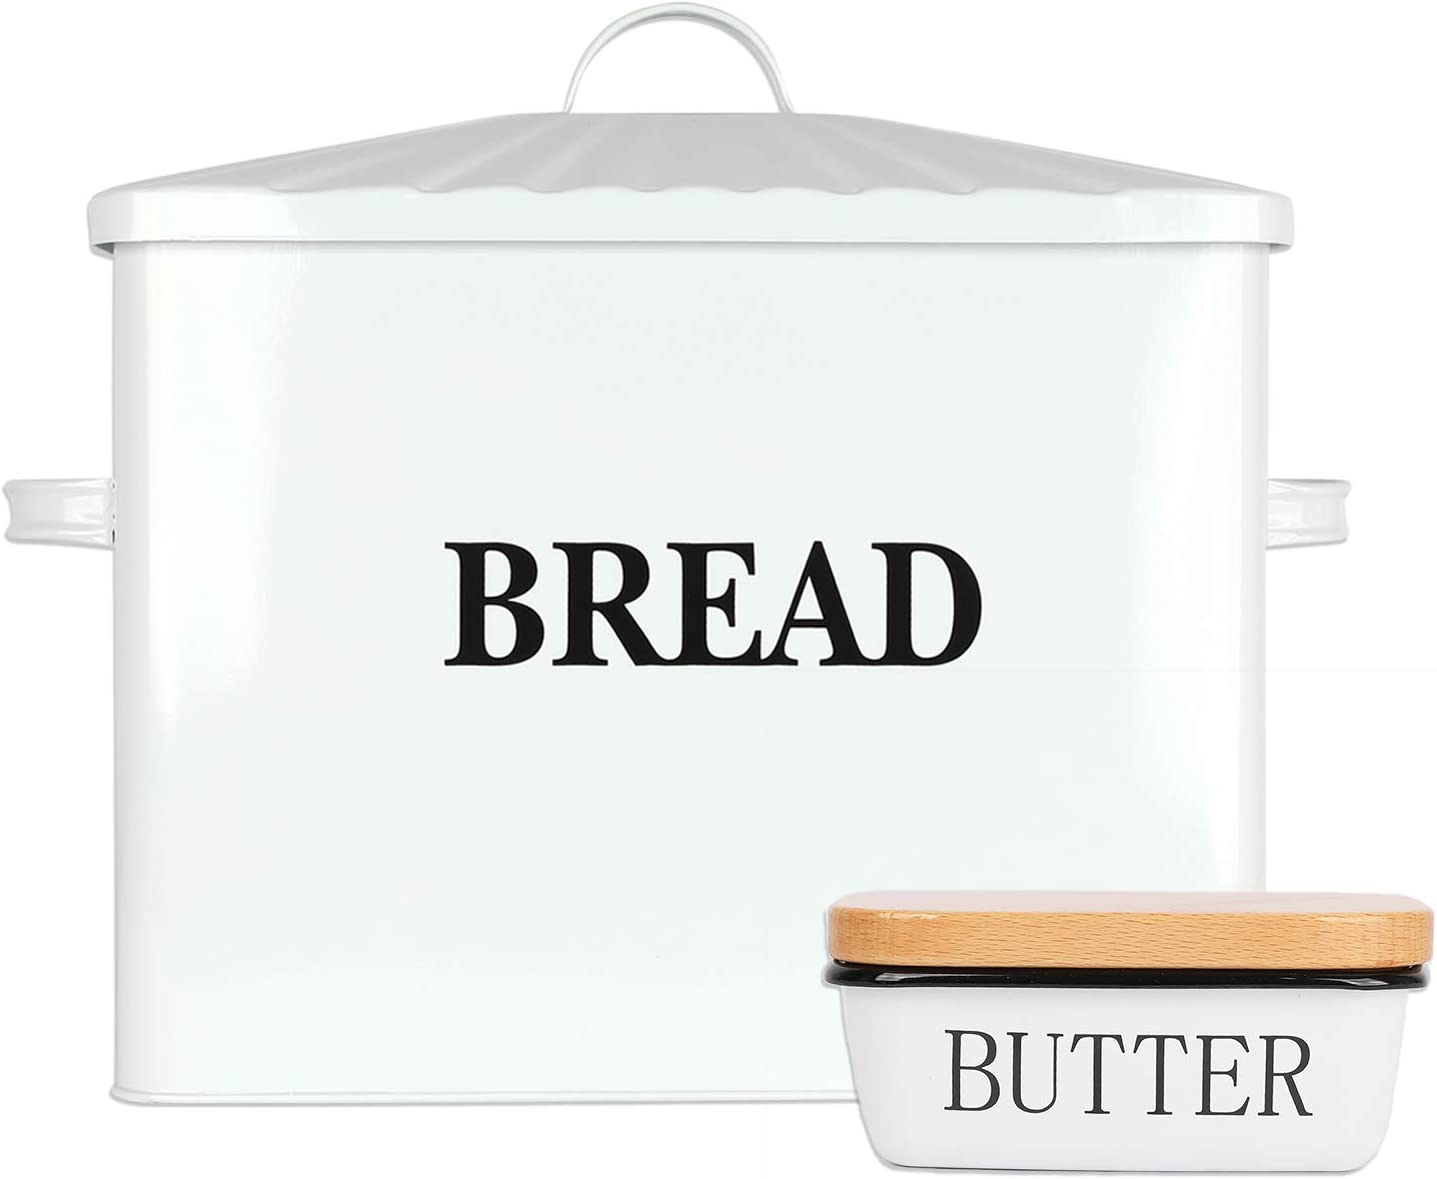 """Houseables Bread Box & Butter Dish Set, 15.25"""" x 12.5"""" x 7"""", Extra Large, Metal, Enameled Storage Containers, Food Bin w/Lid, Rustic Enamelware, Vintage Decor, Farmhouse, Kitchen Counter Keeper"""